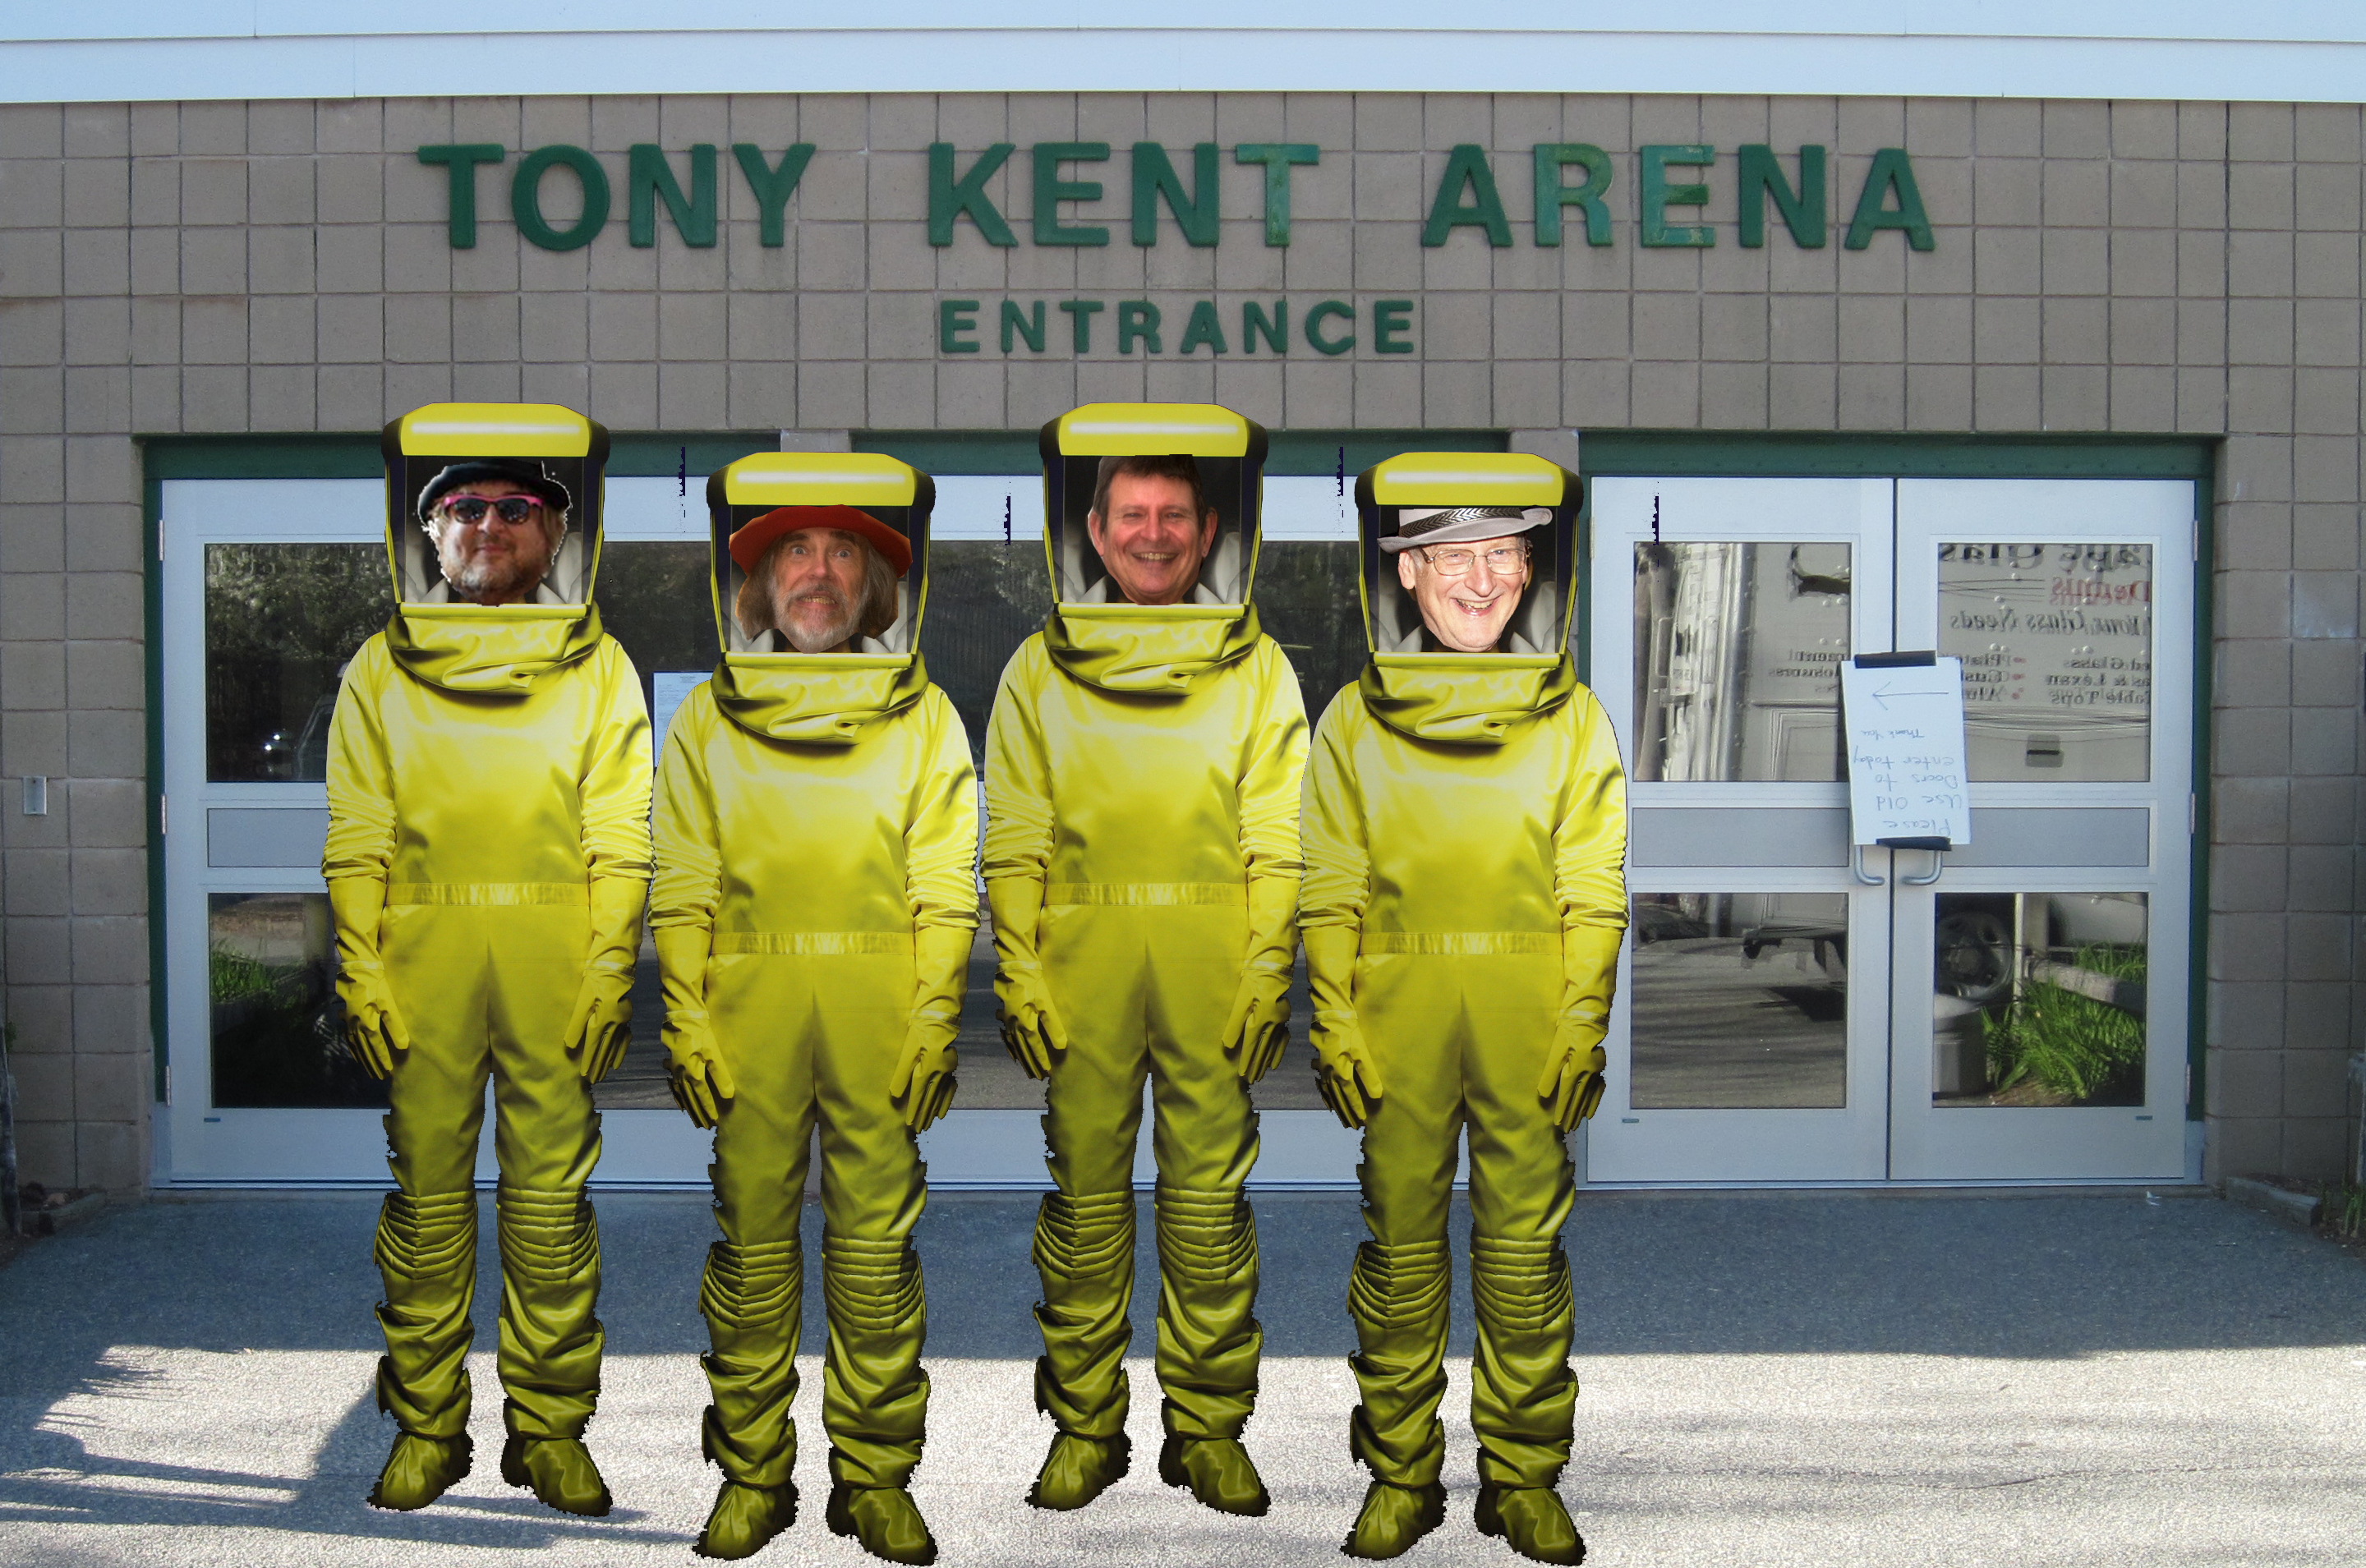 Tony Kent Arena Hazardous Waste Drop